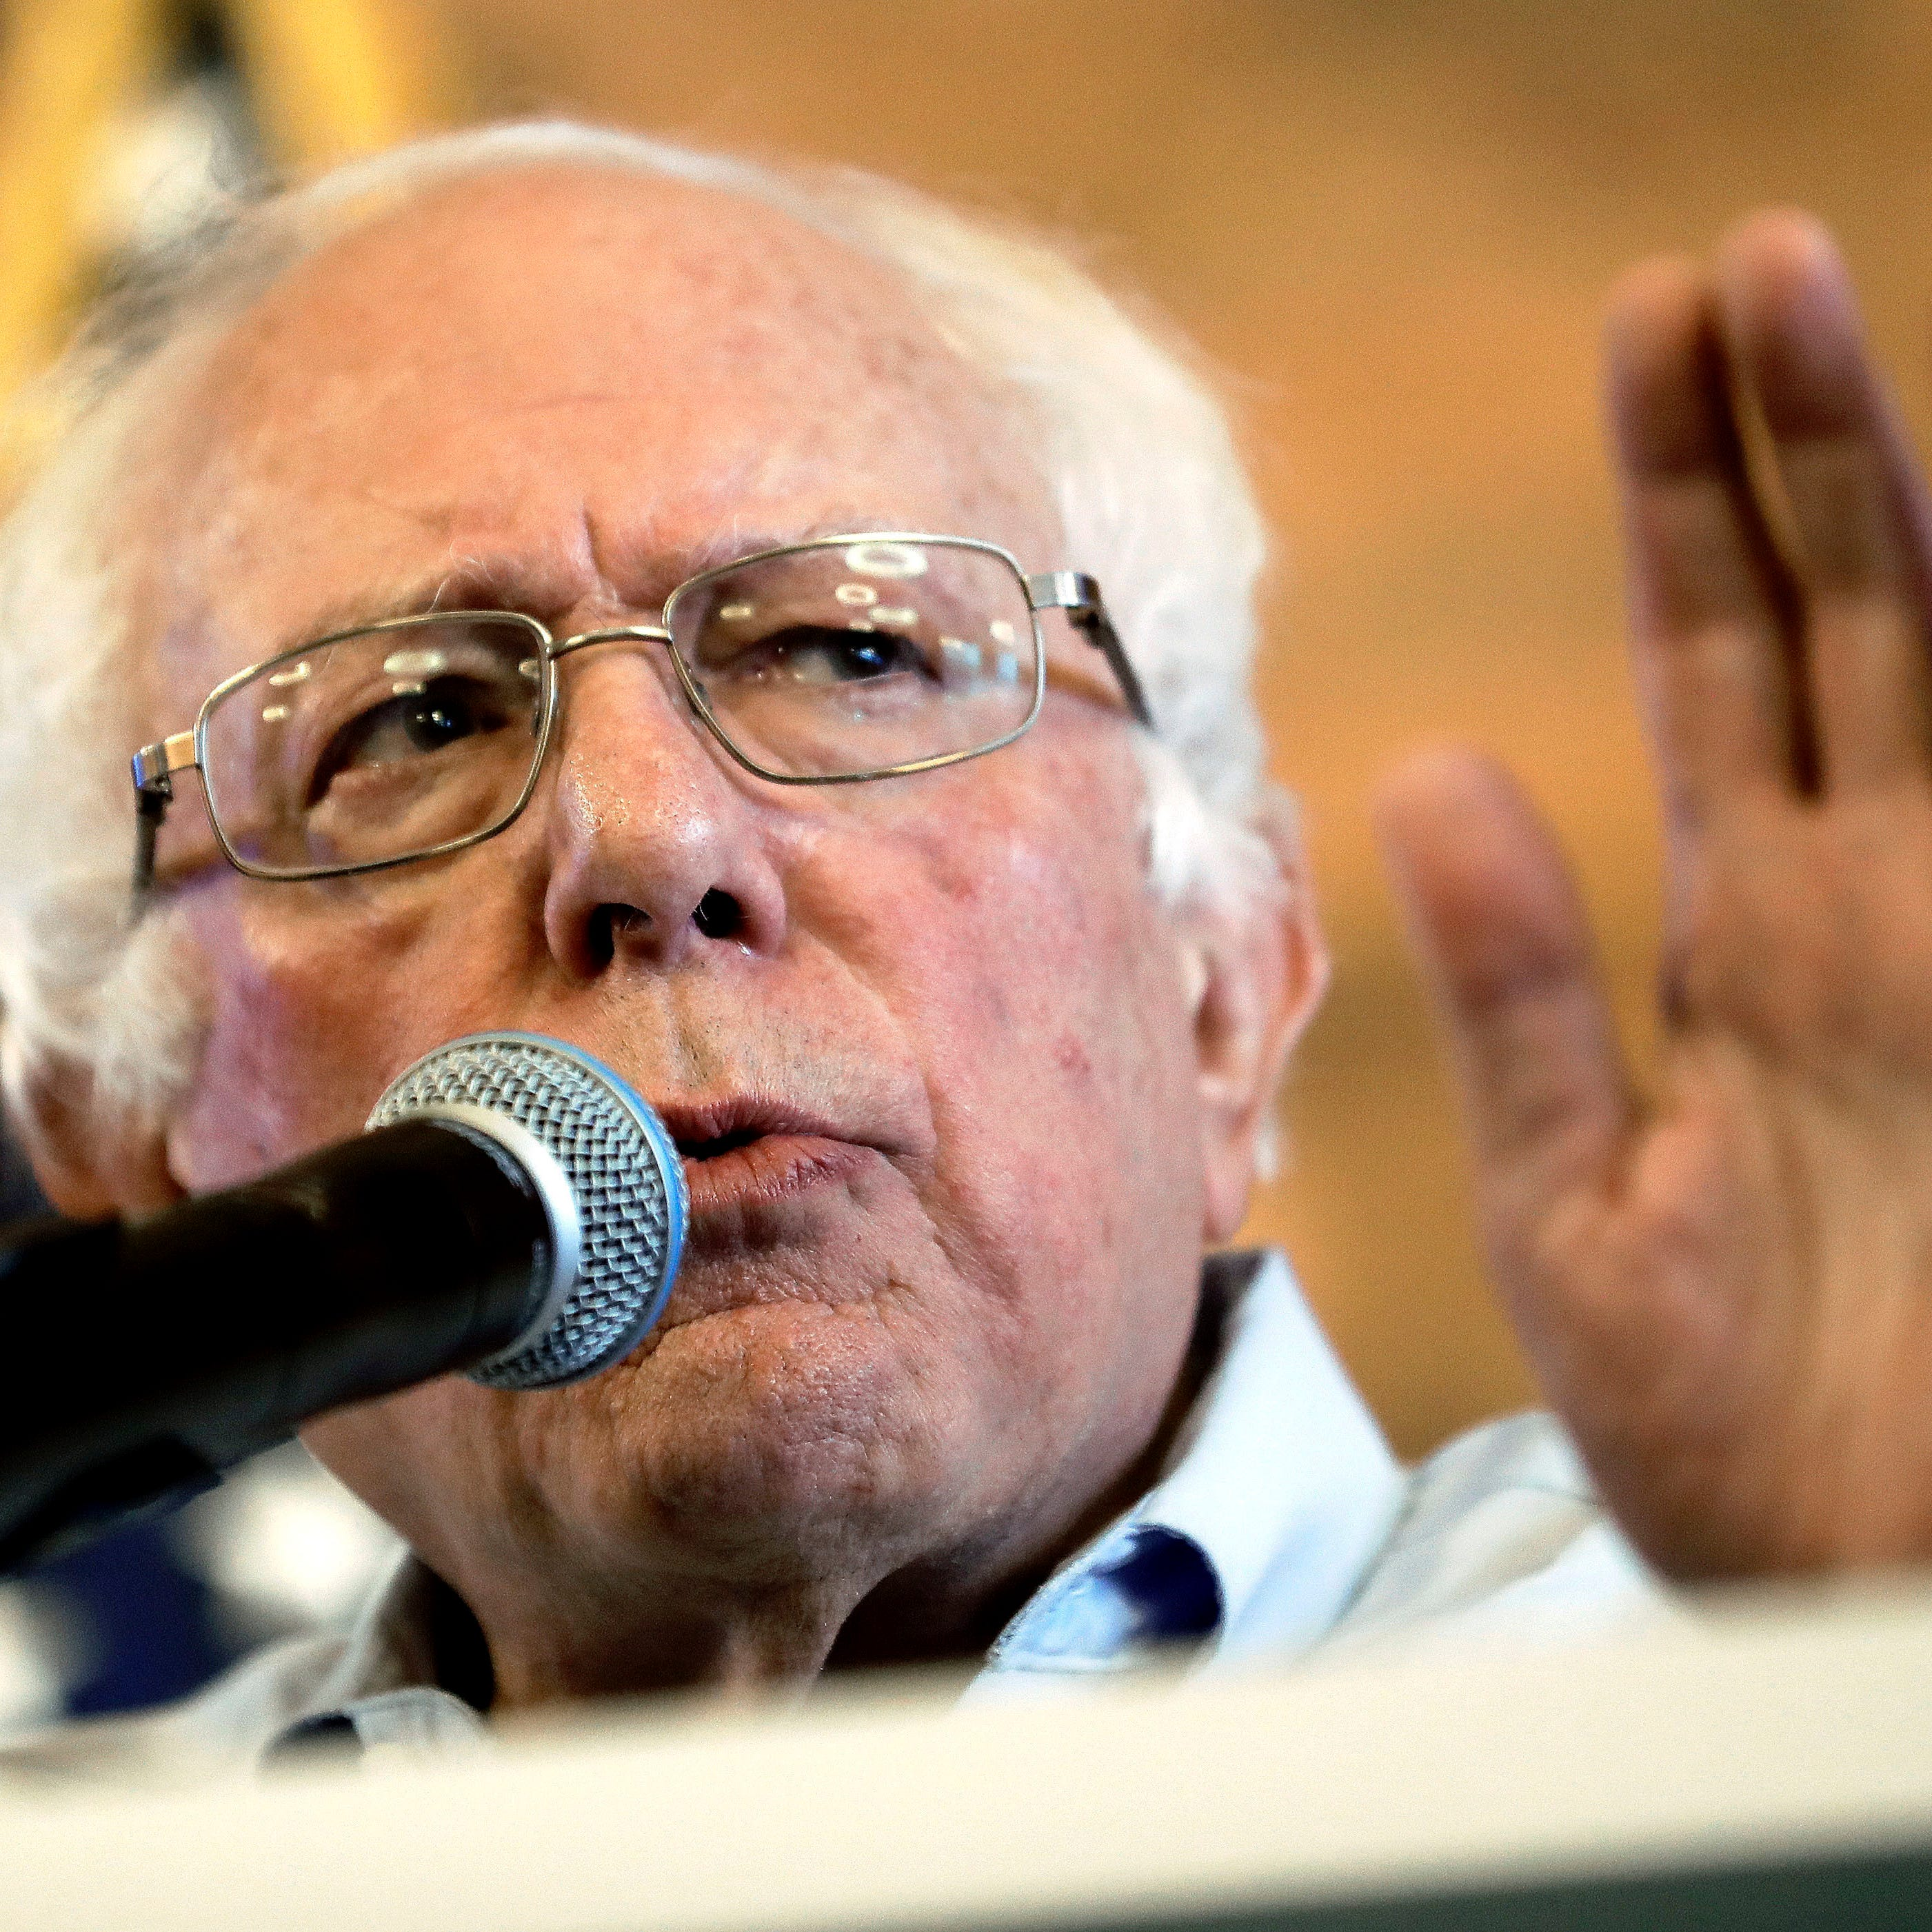 Opinion: Sanders' ridiculous proposal would decimate America's working class